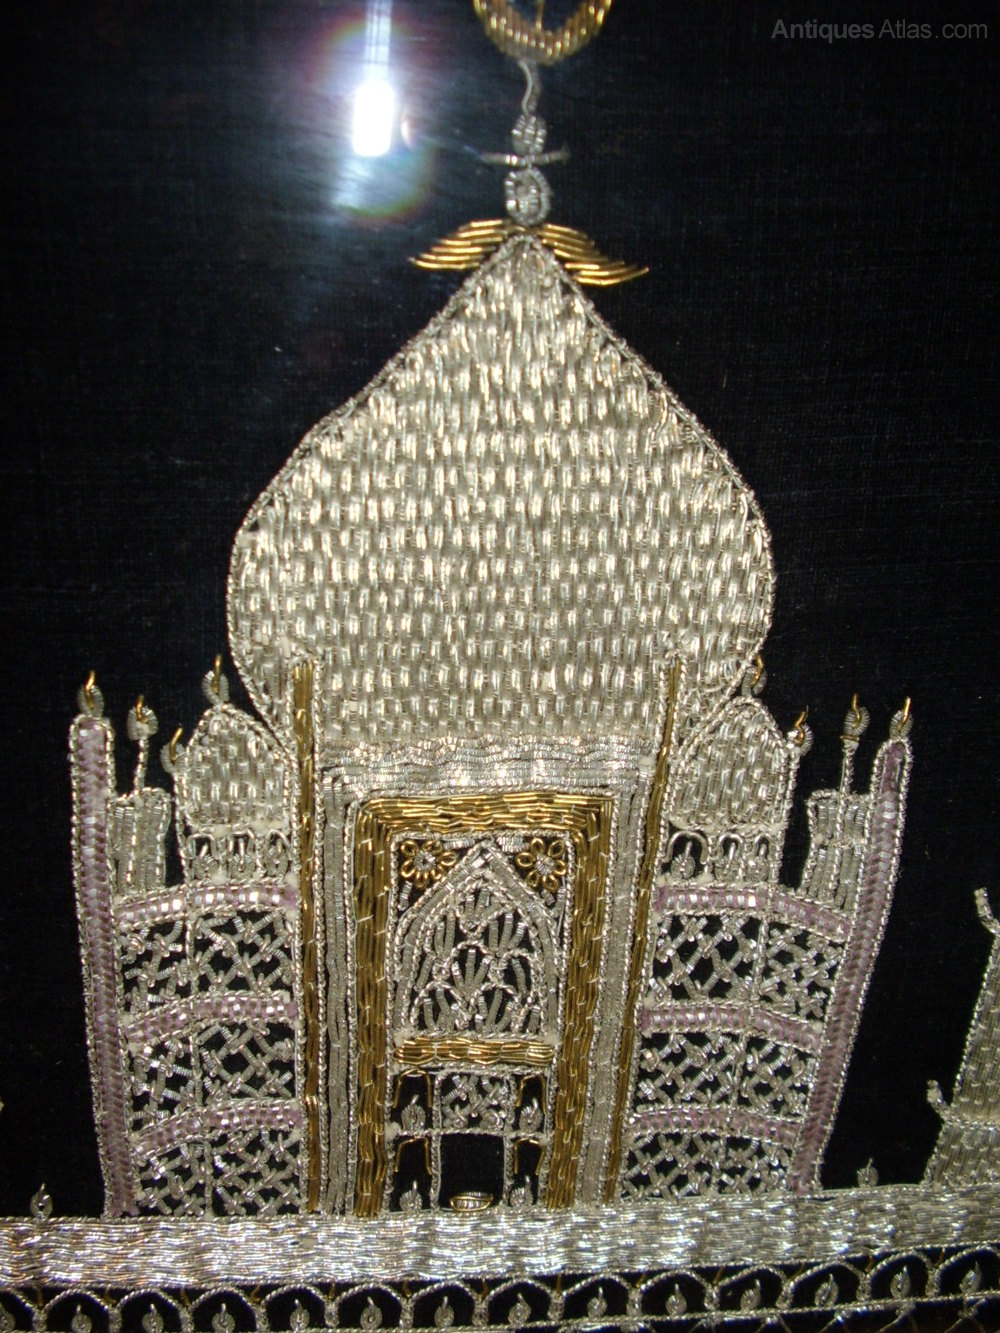 Antiques Atlas Taj Mahal Embroidery In Gold Amp Silver Thread